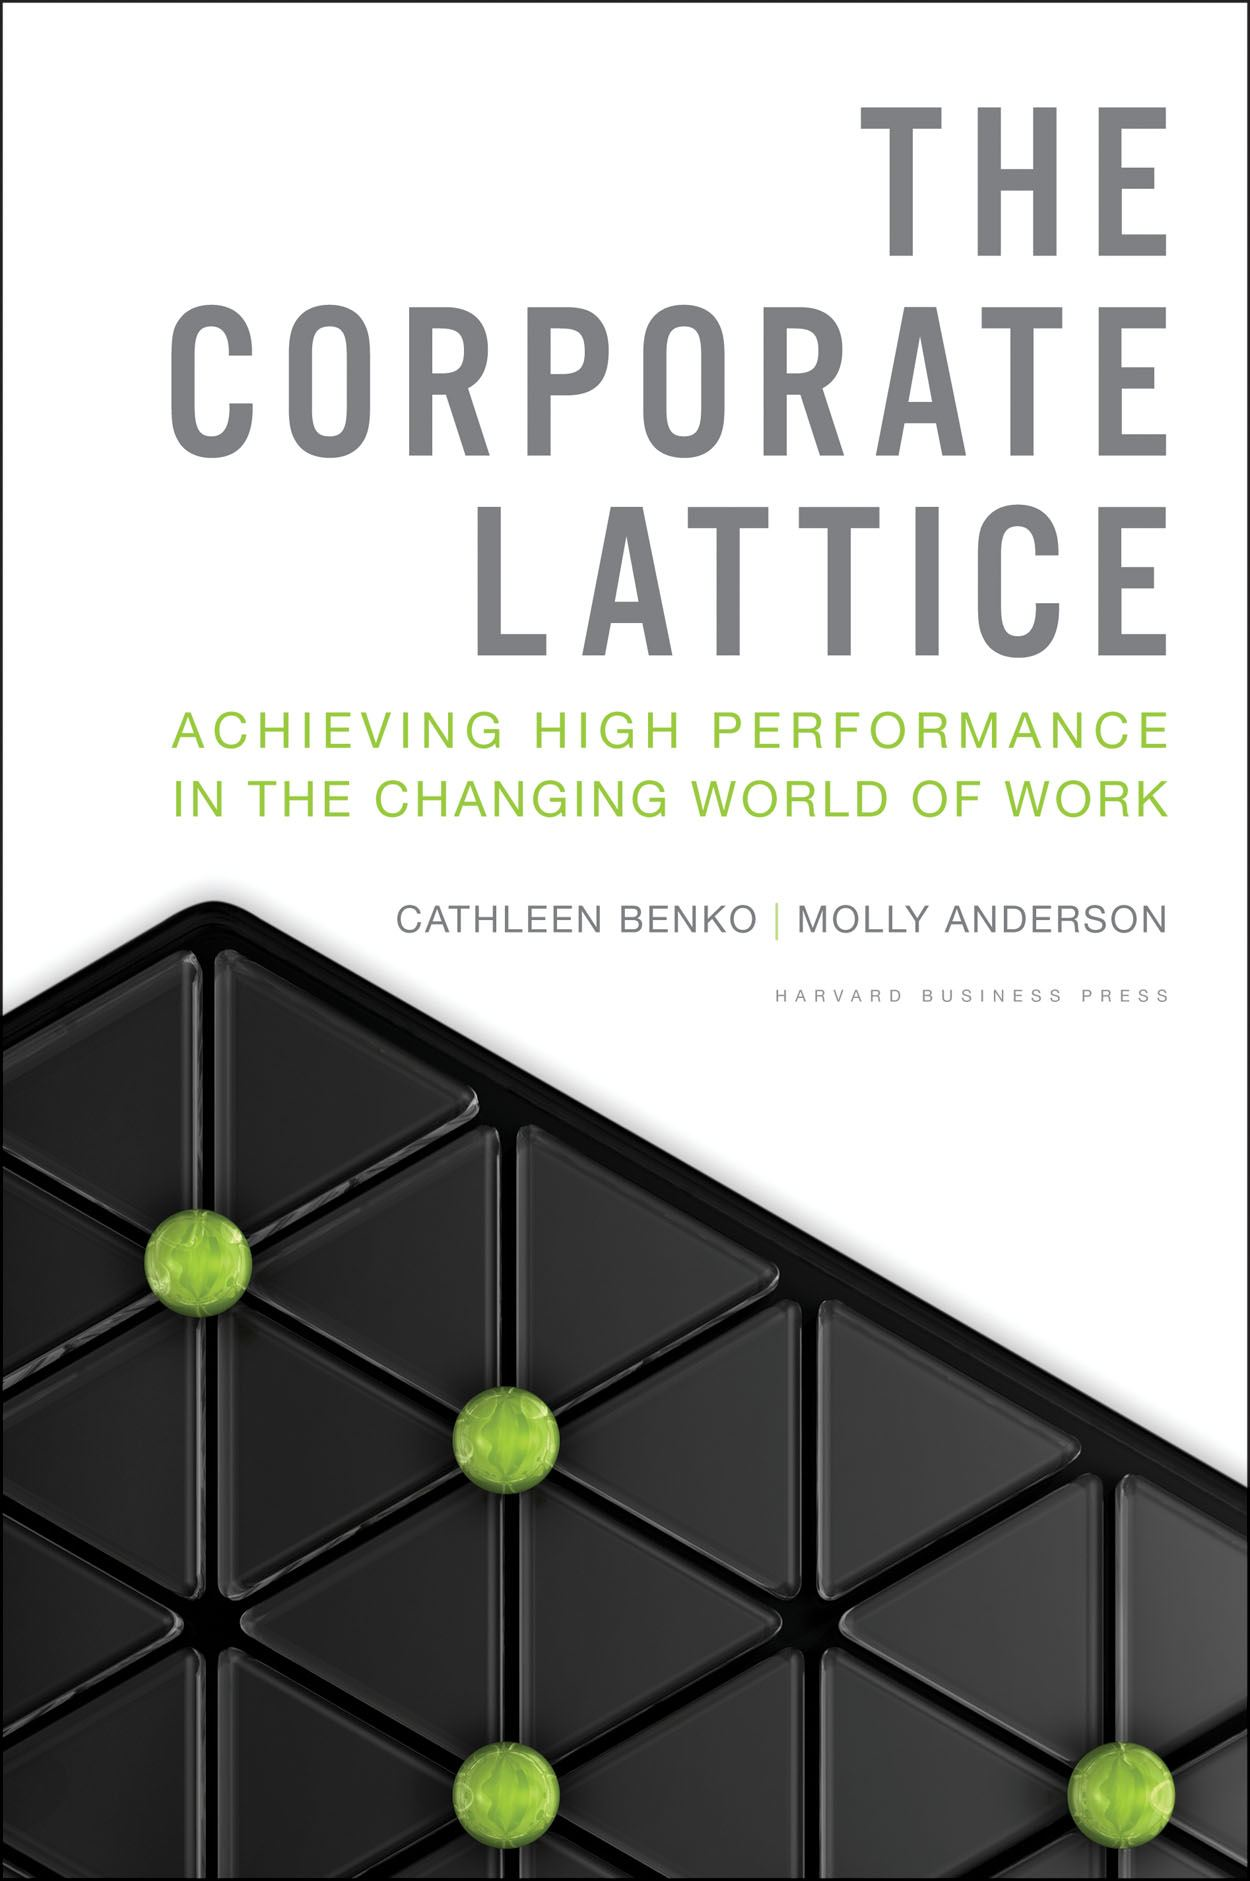 The Corporate Lattice